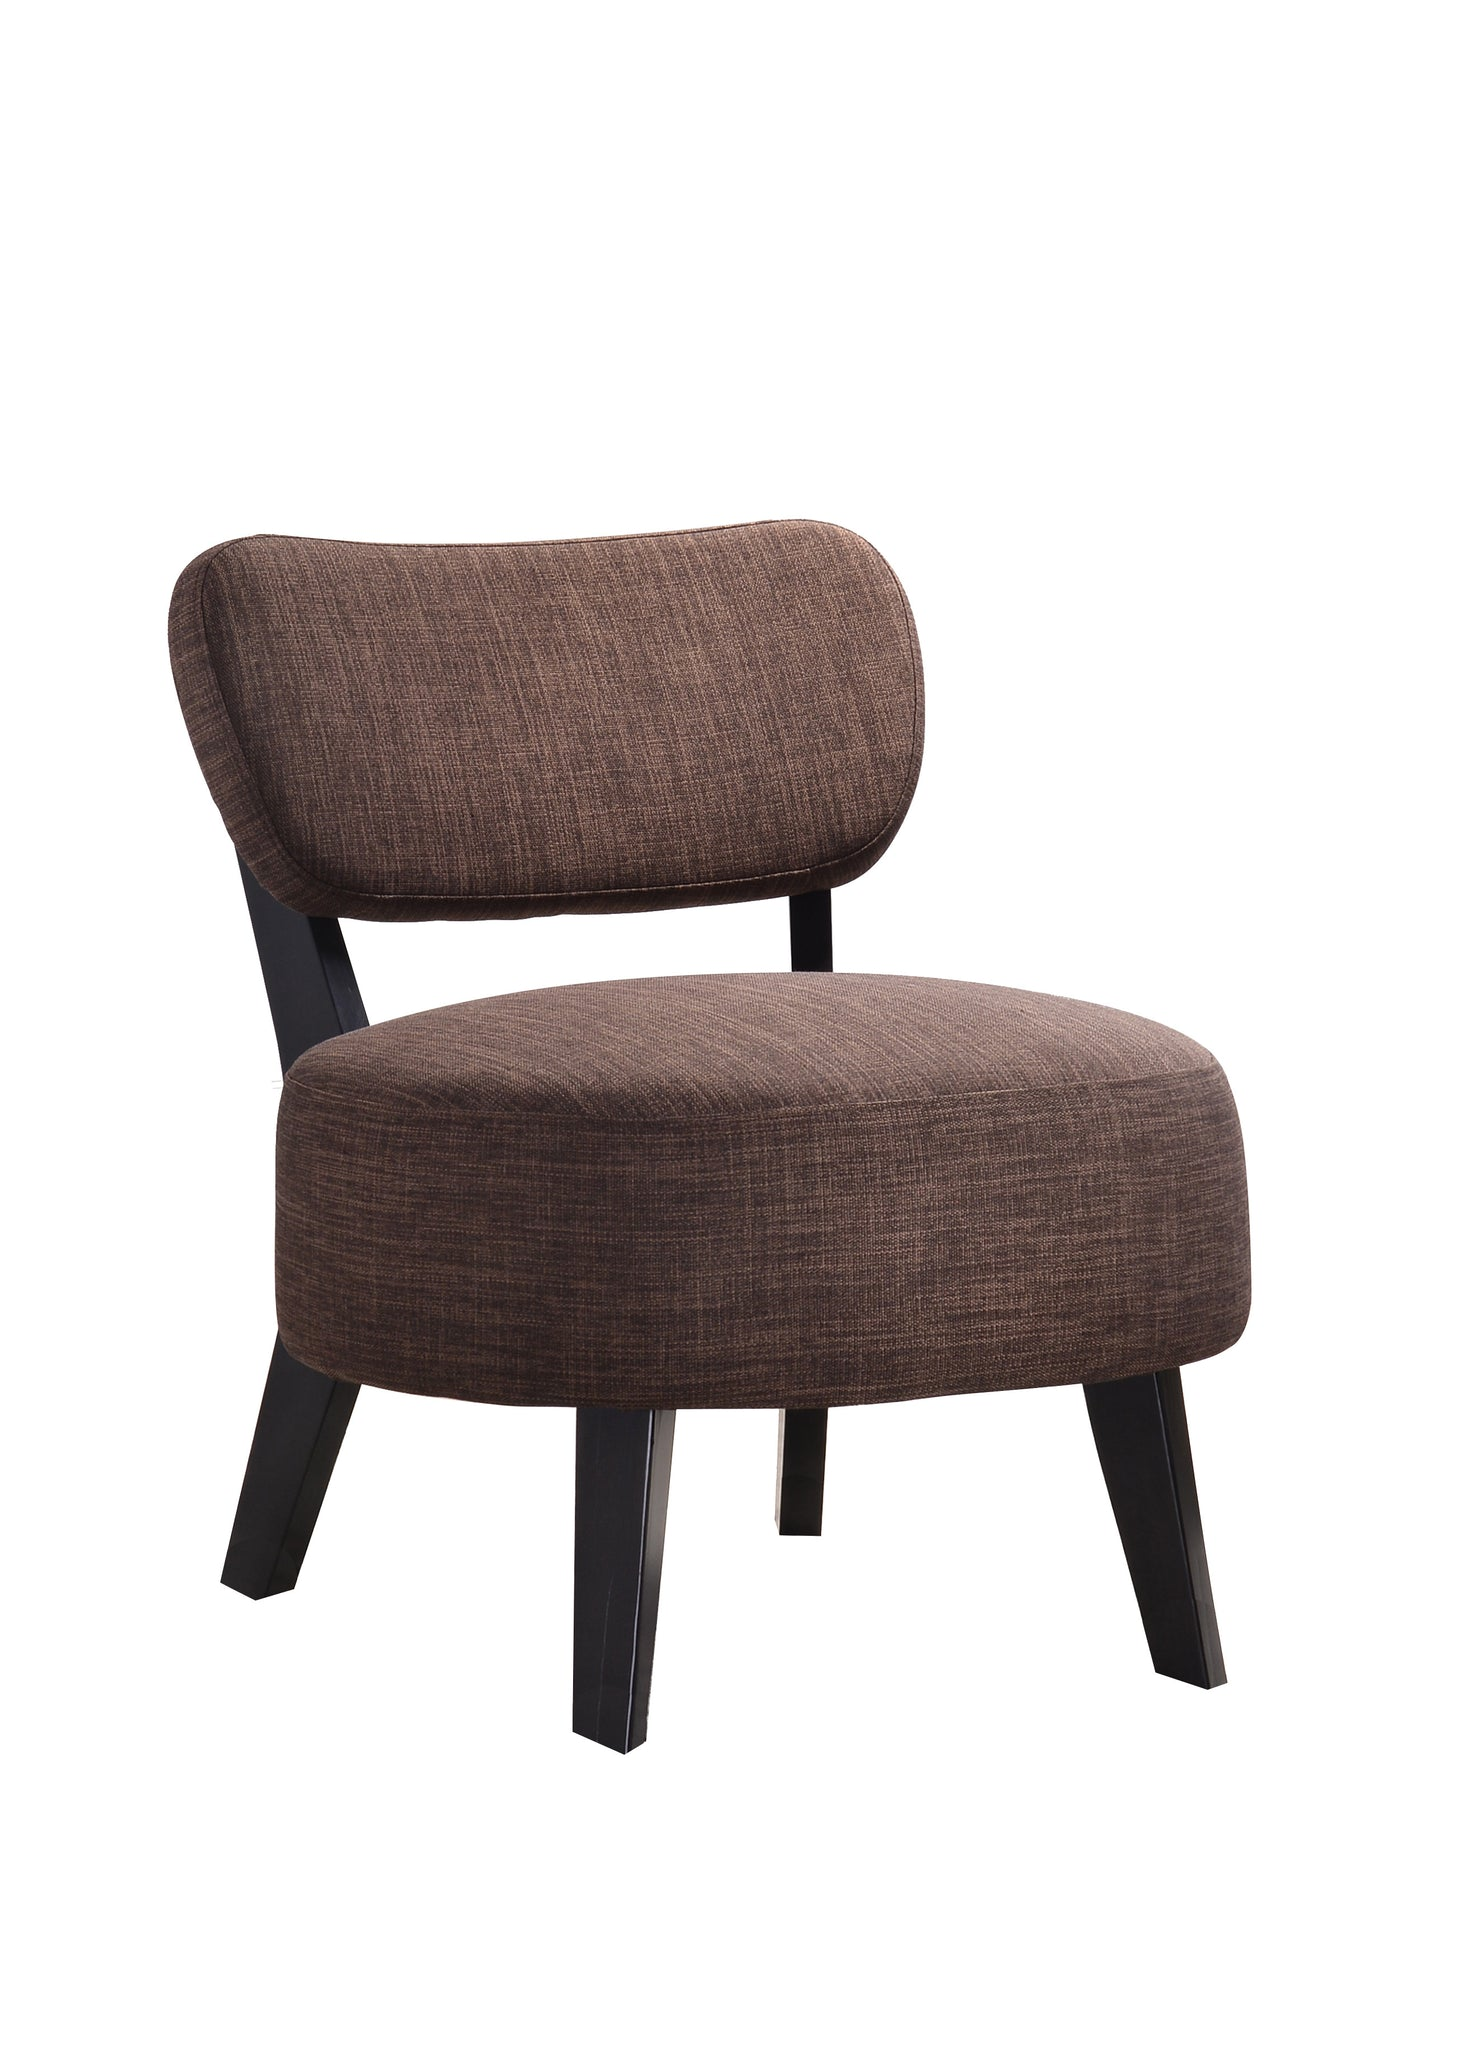 wood frame accent chairs. Brown \u0026 Black Upholstered Fabric Armless Oversized Accent Chair With Wood Frame Legs Chairs A